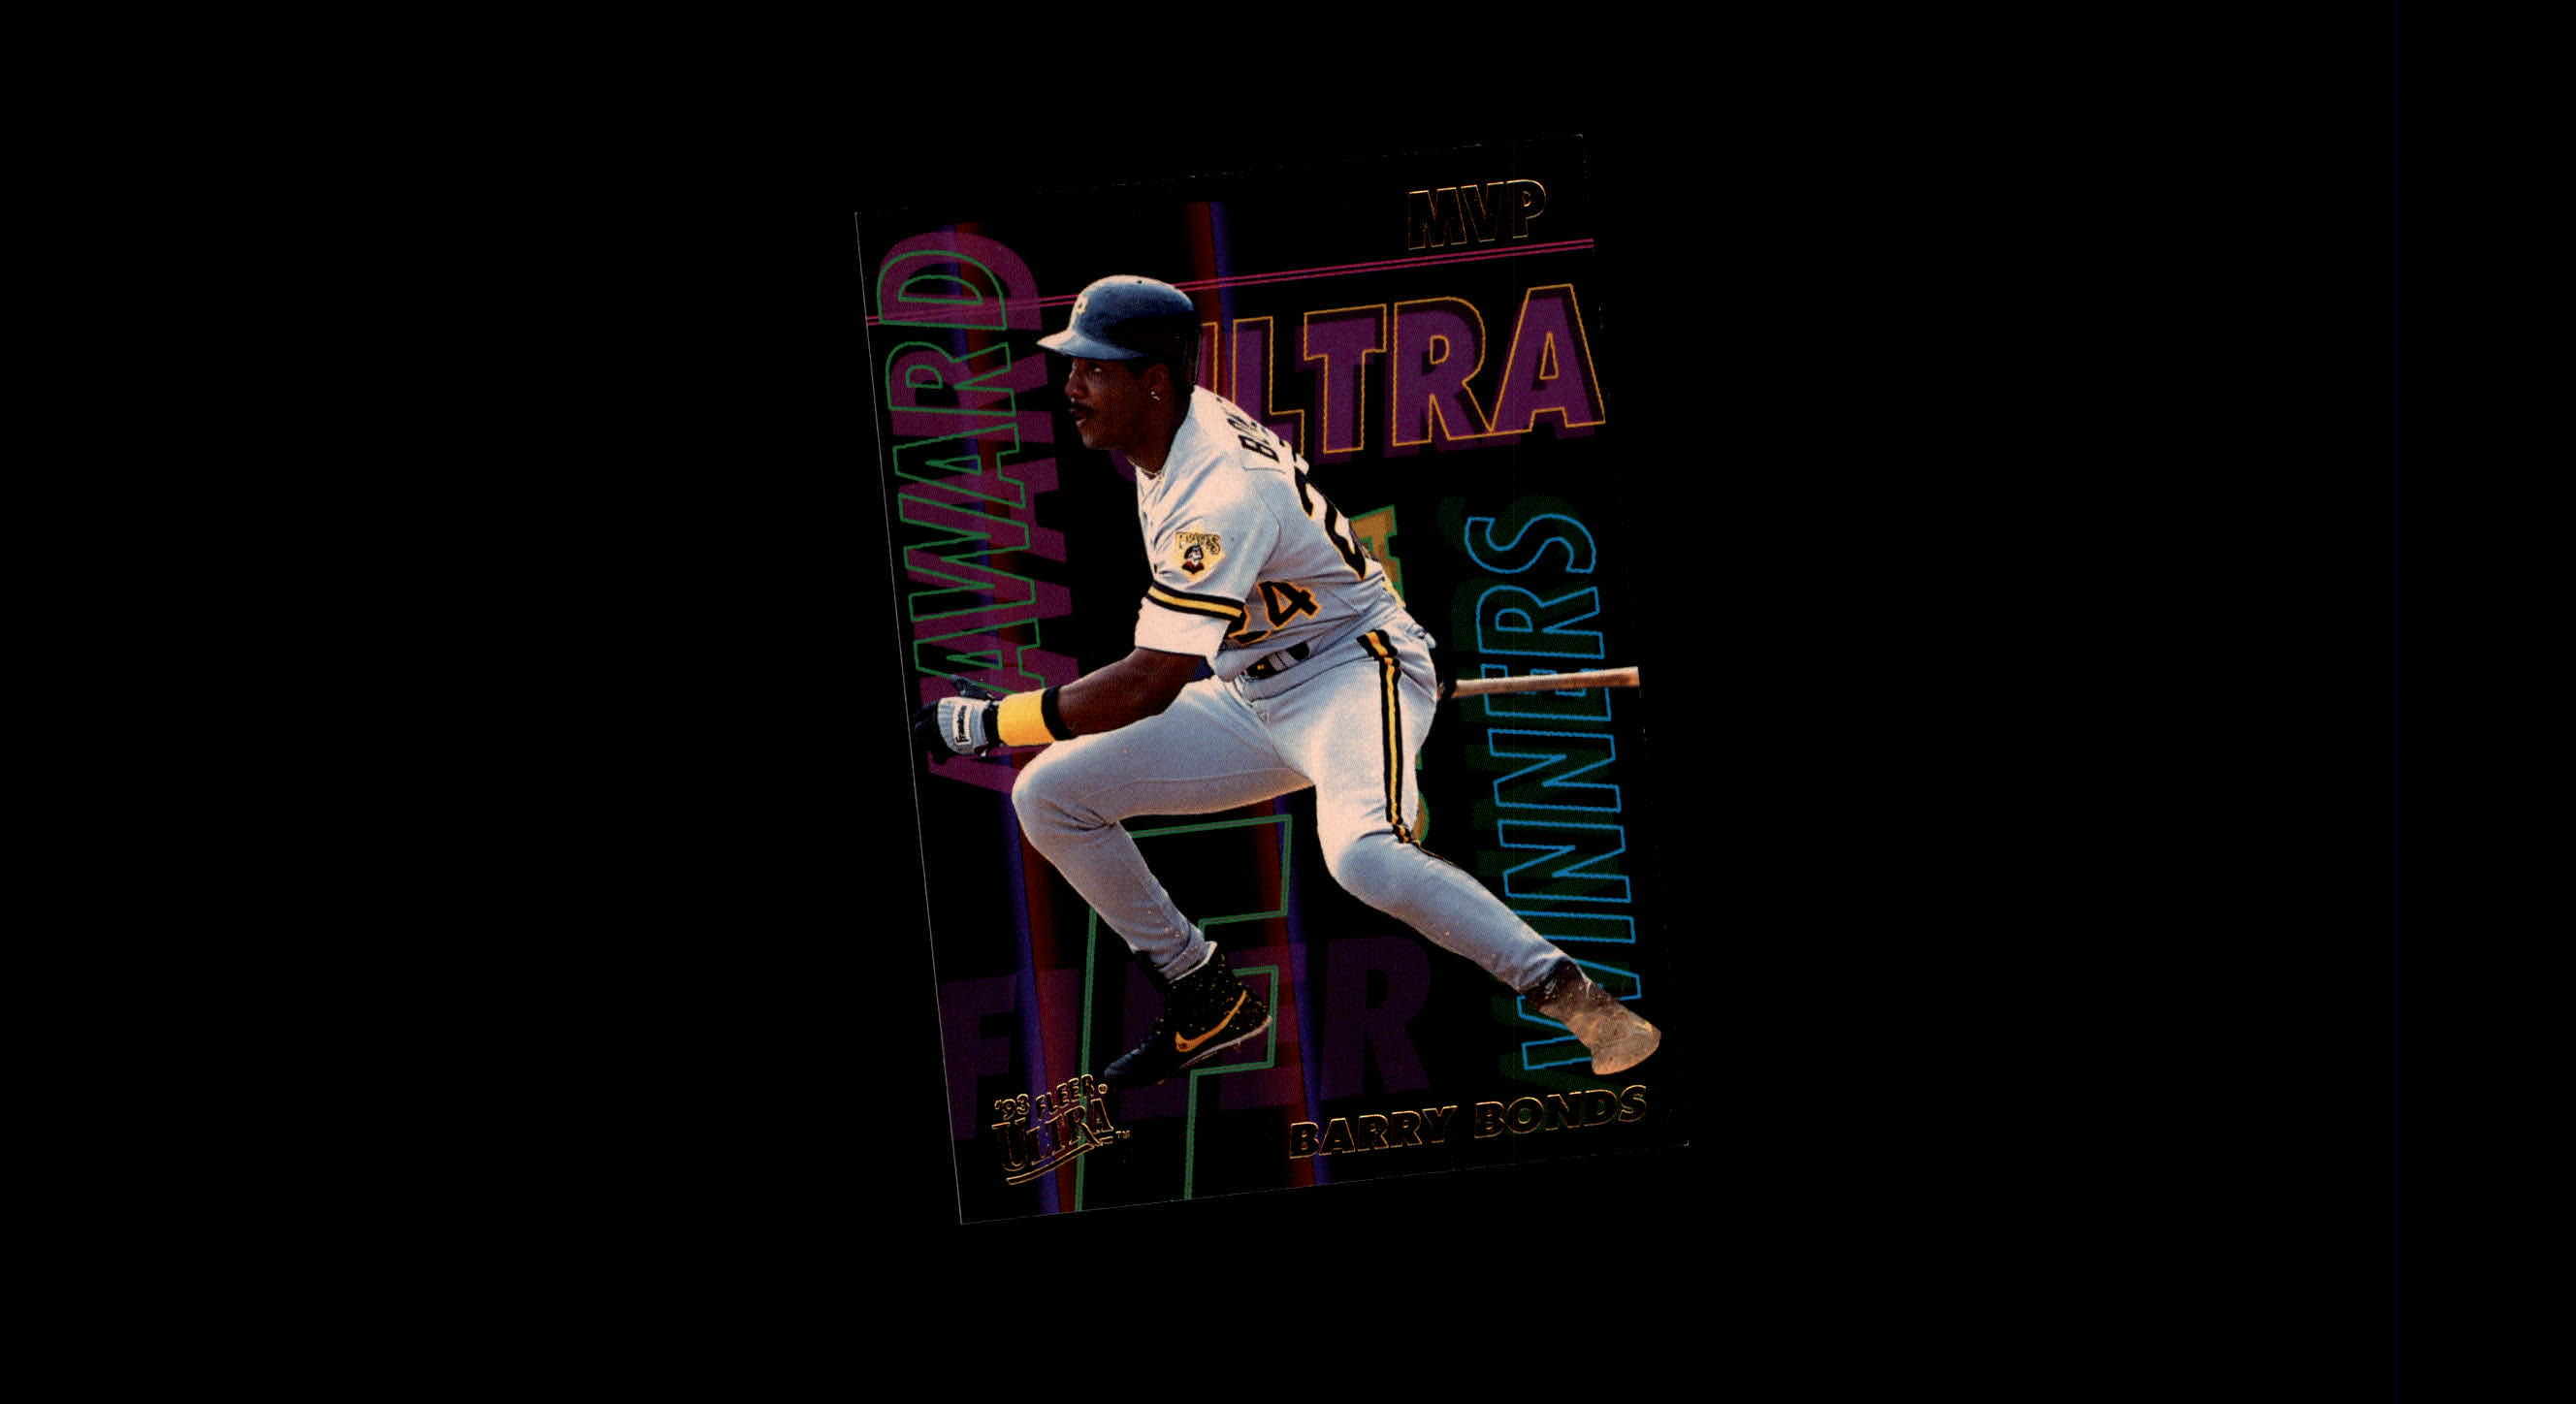 1993 Ultra Award Winners #24 Barry Bonds